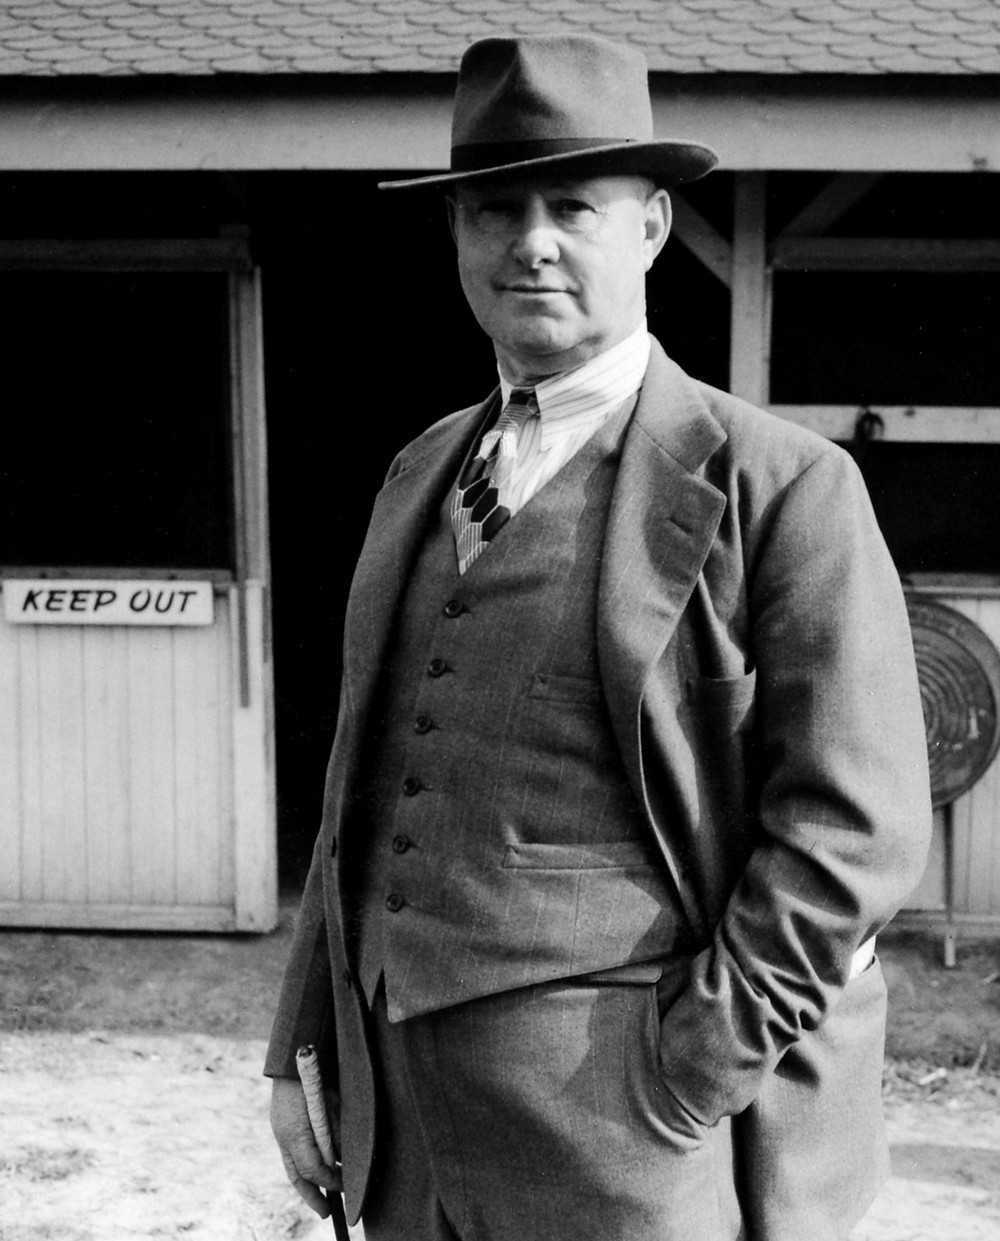 Hall of Fame horse trainer Ben A. Jones in Keeneland in 1941.